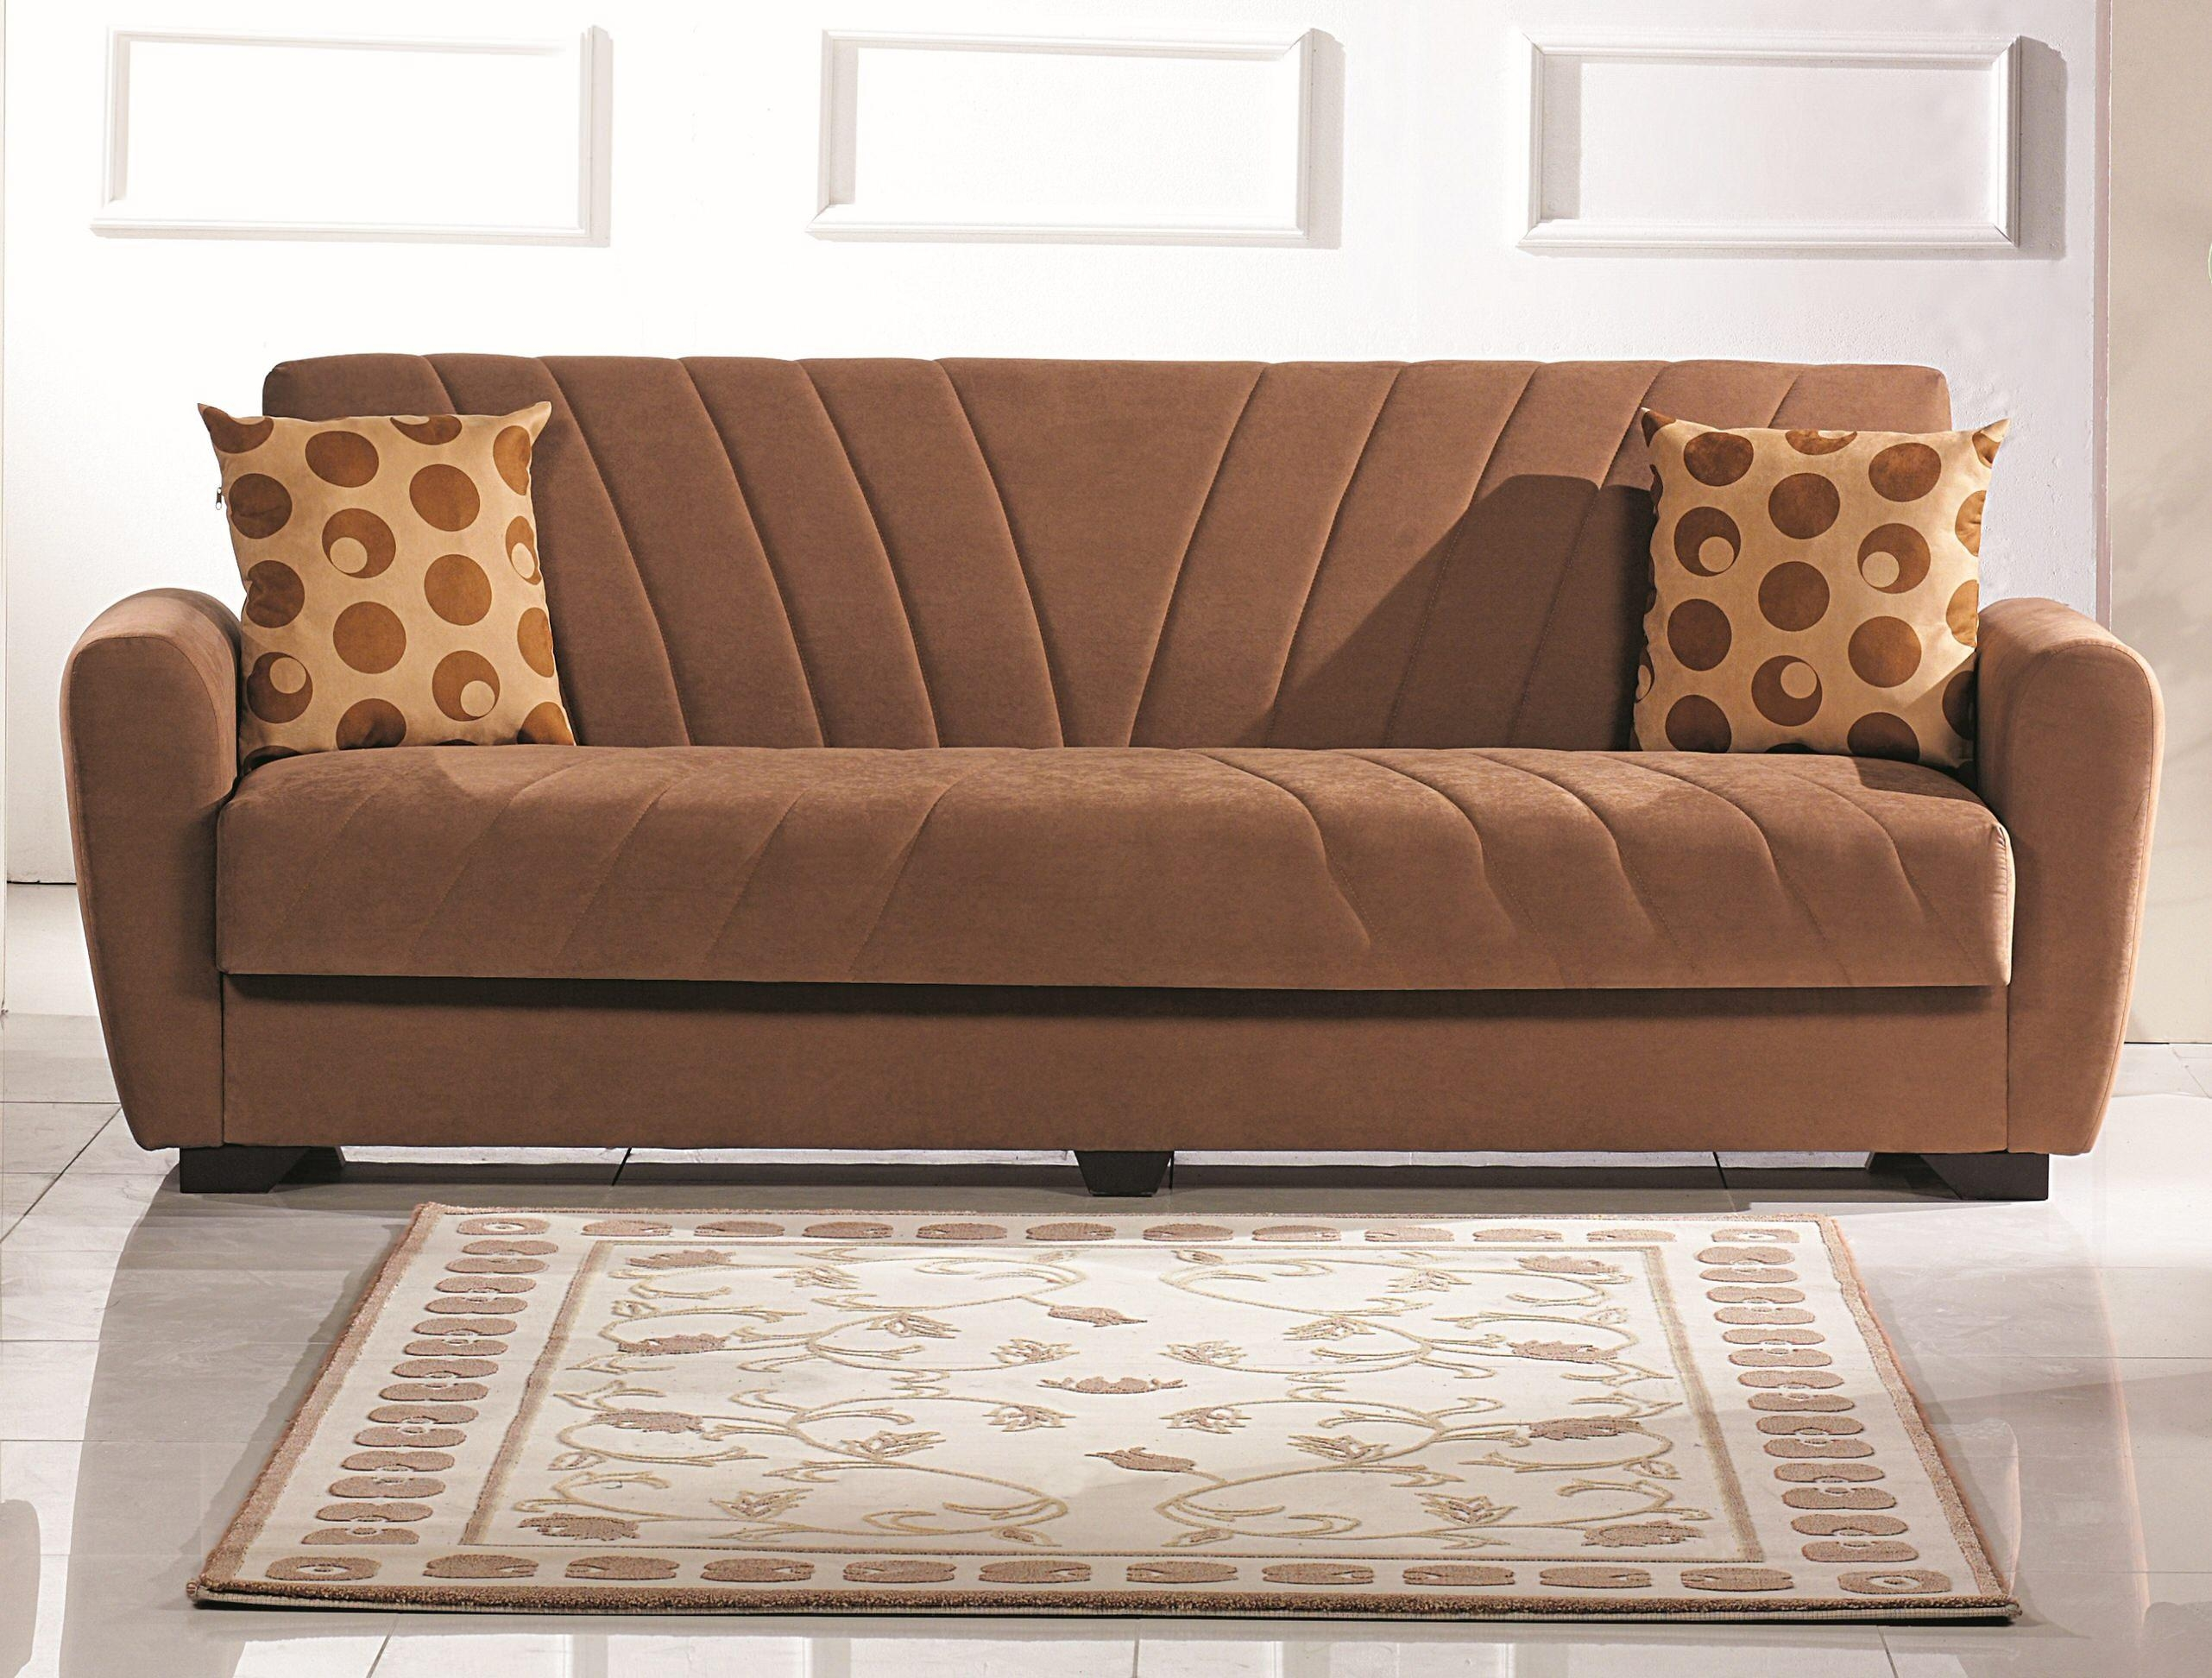 20 collection of sofas tampa sofa ideas for Affordable furniture jonesboro arkansas